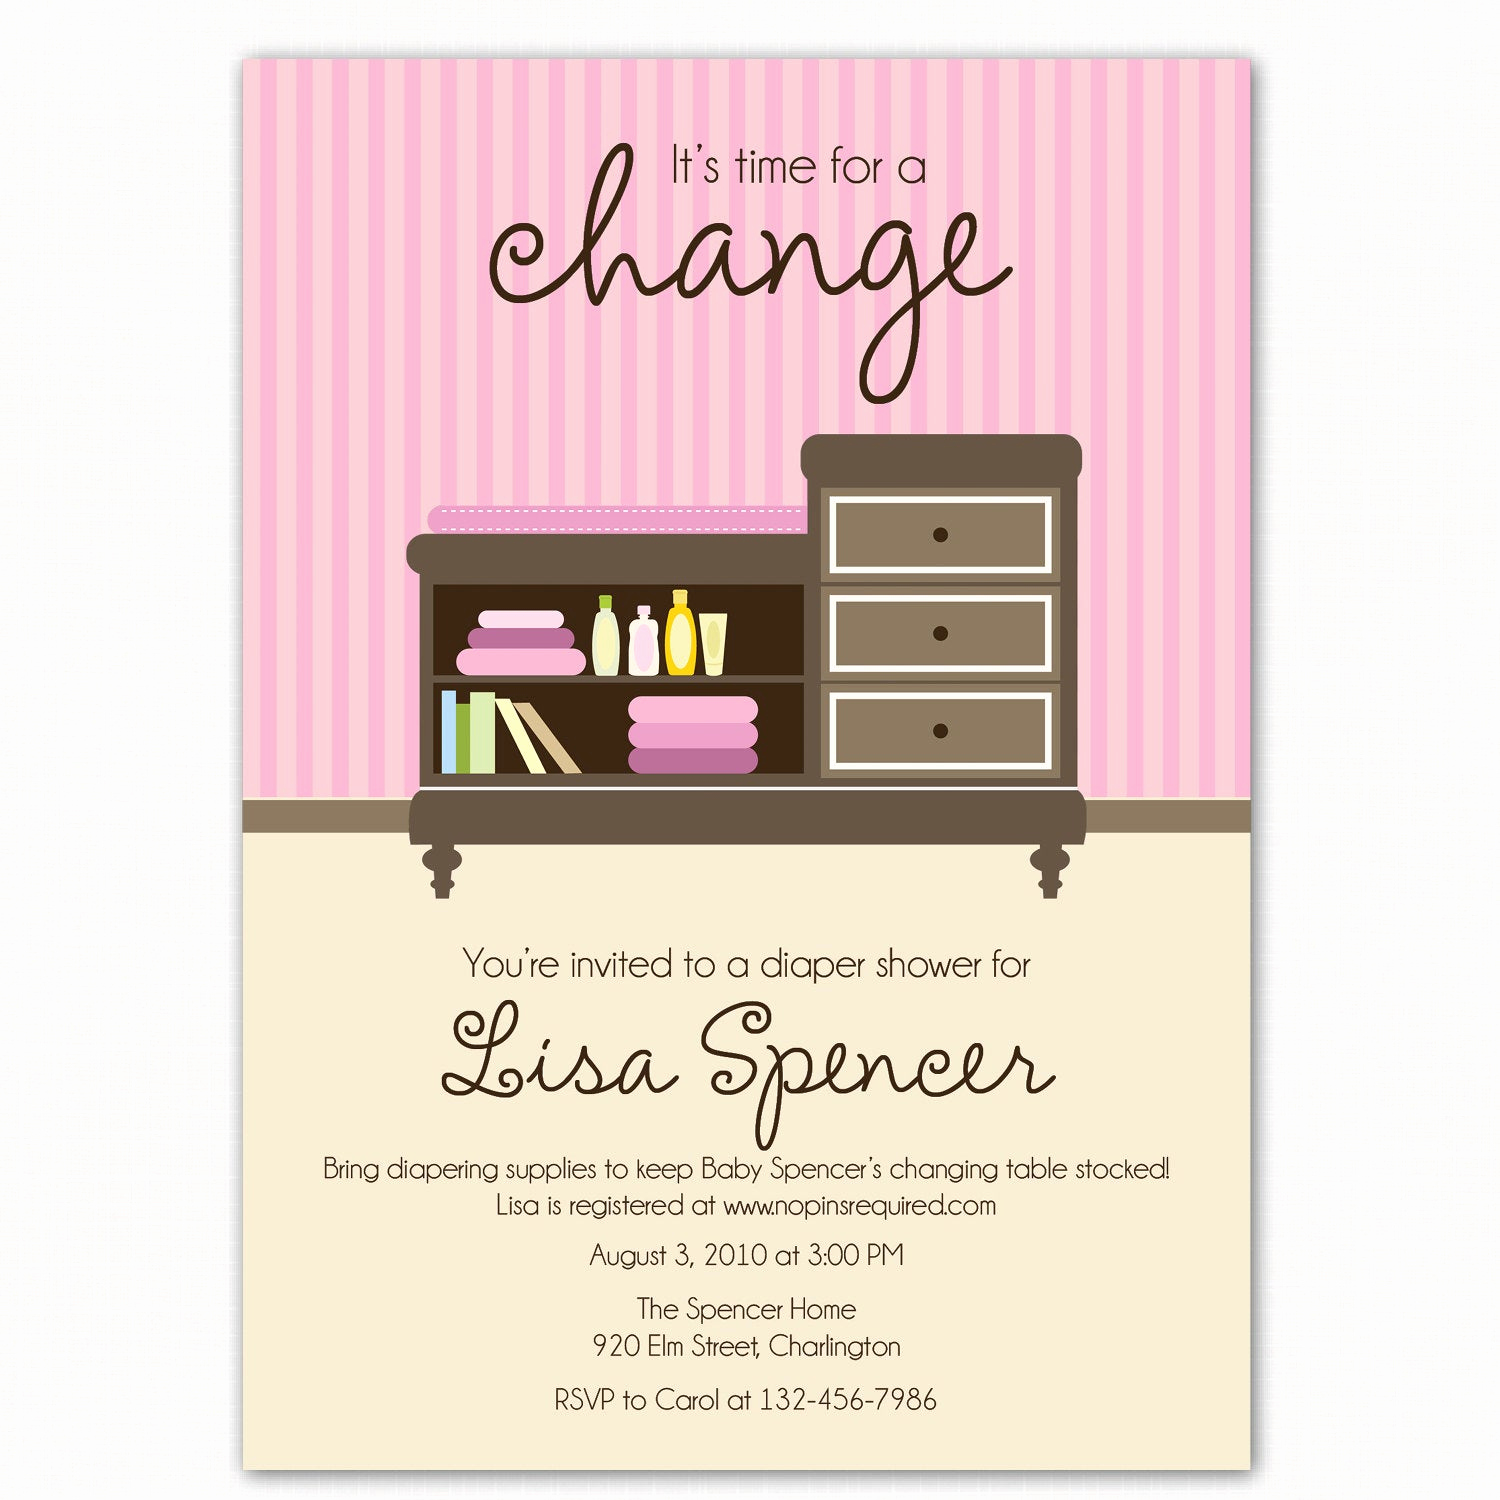 Diapers and Wipes Shower Invitation Elegant Diaper Baby Shower Invitation Changing Table Time for A